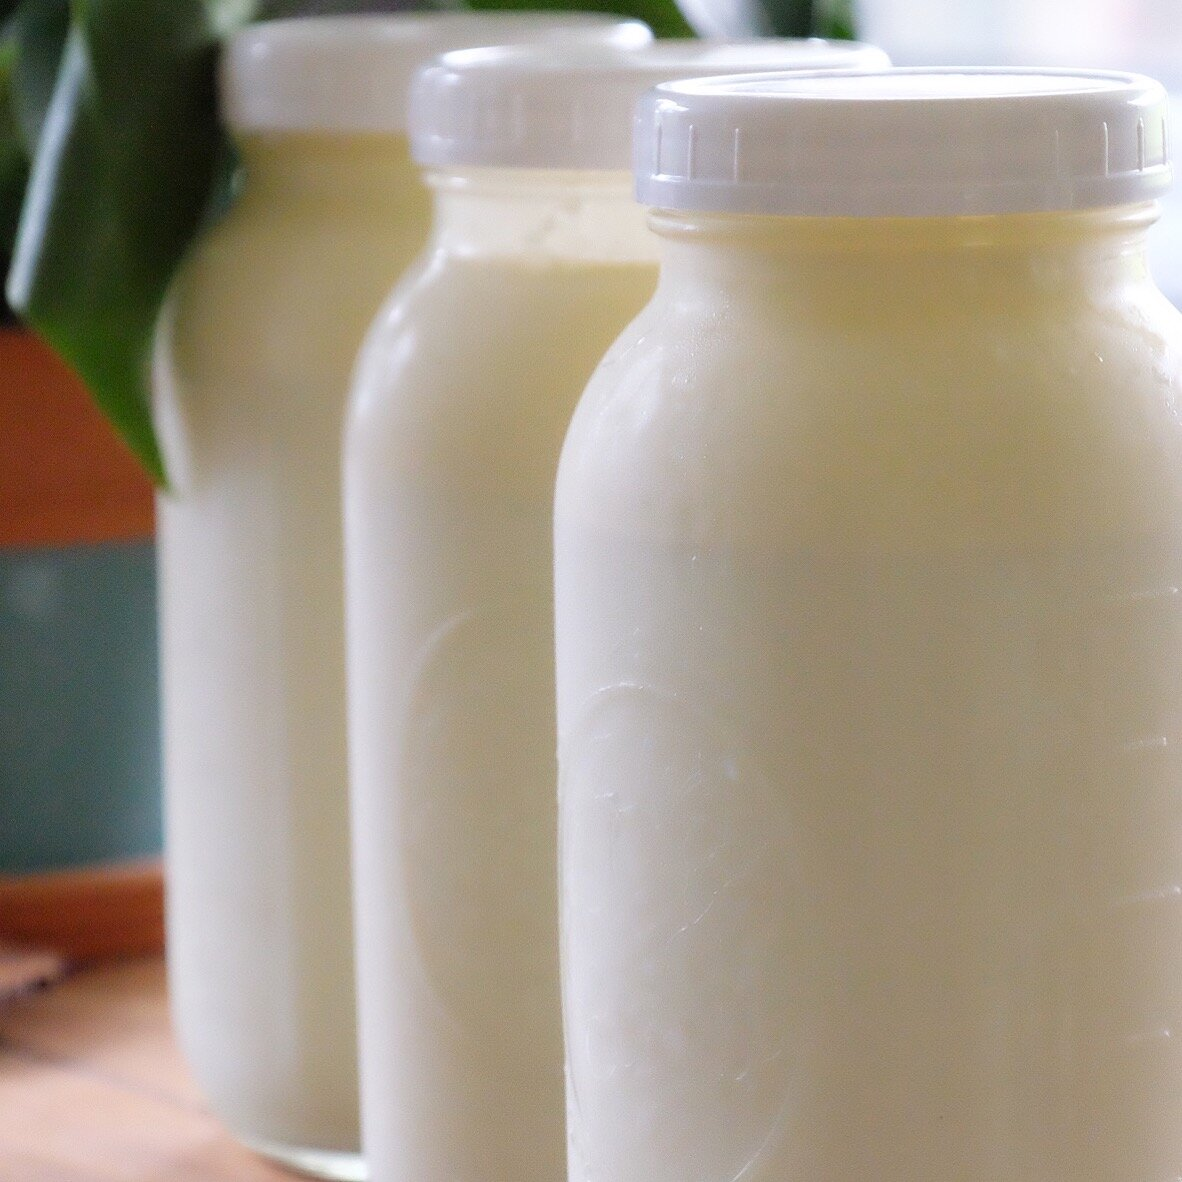 1 1/2 gallons of raw milk from my cow share! after 2 years dairy free, i discovered raw milk as an exceptional tool in my healing process, and still to this day drink 2 gallons a week all by myself.